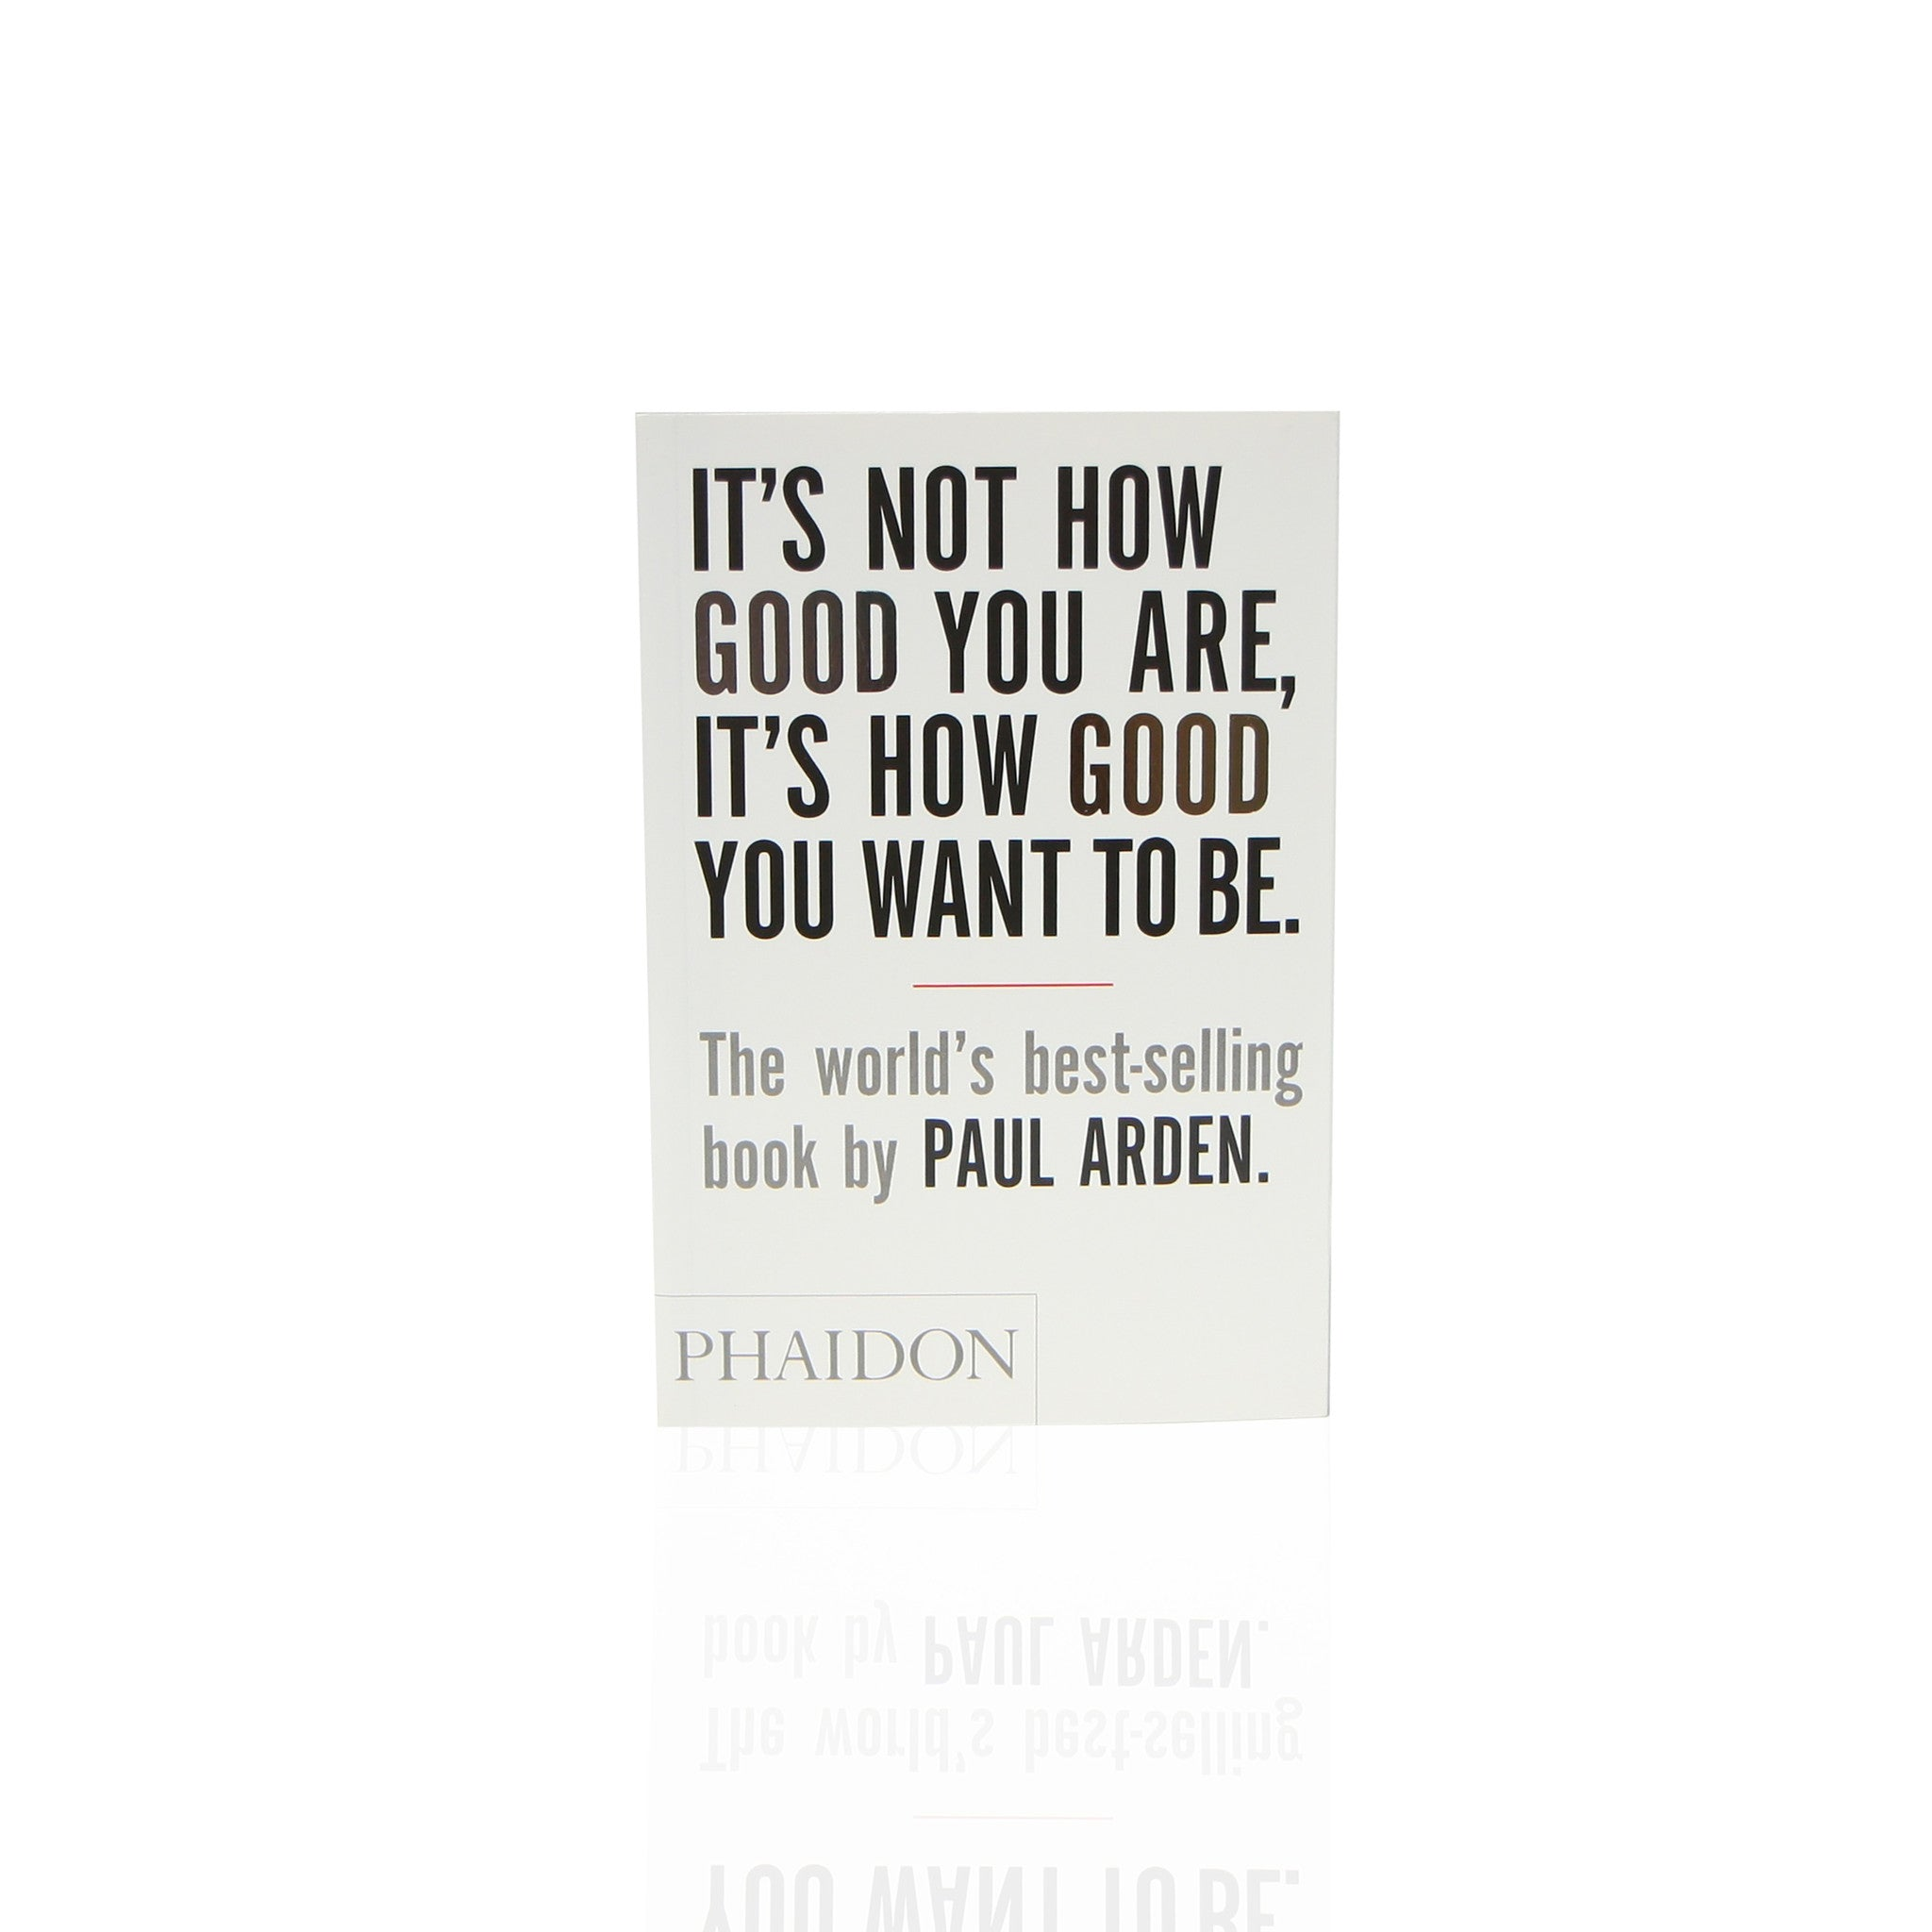 It's Not How Good You Are...